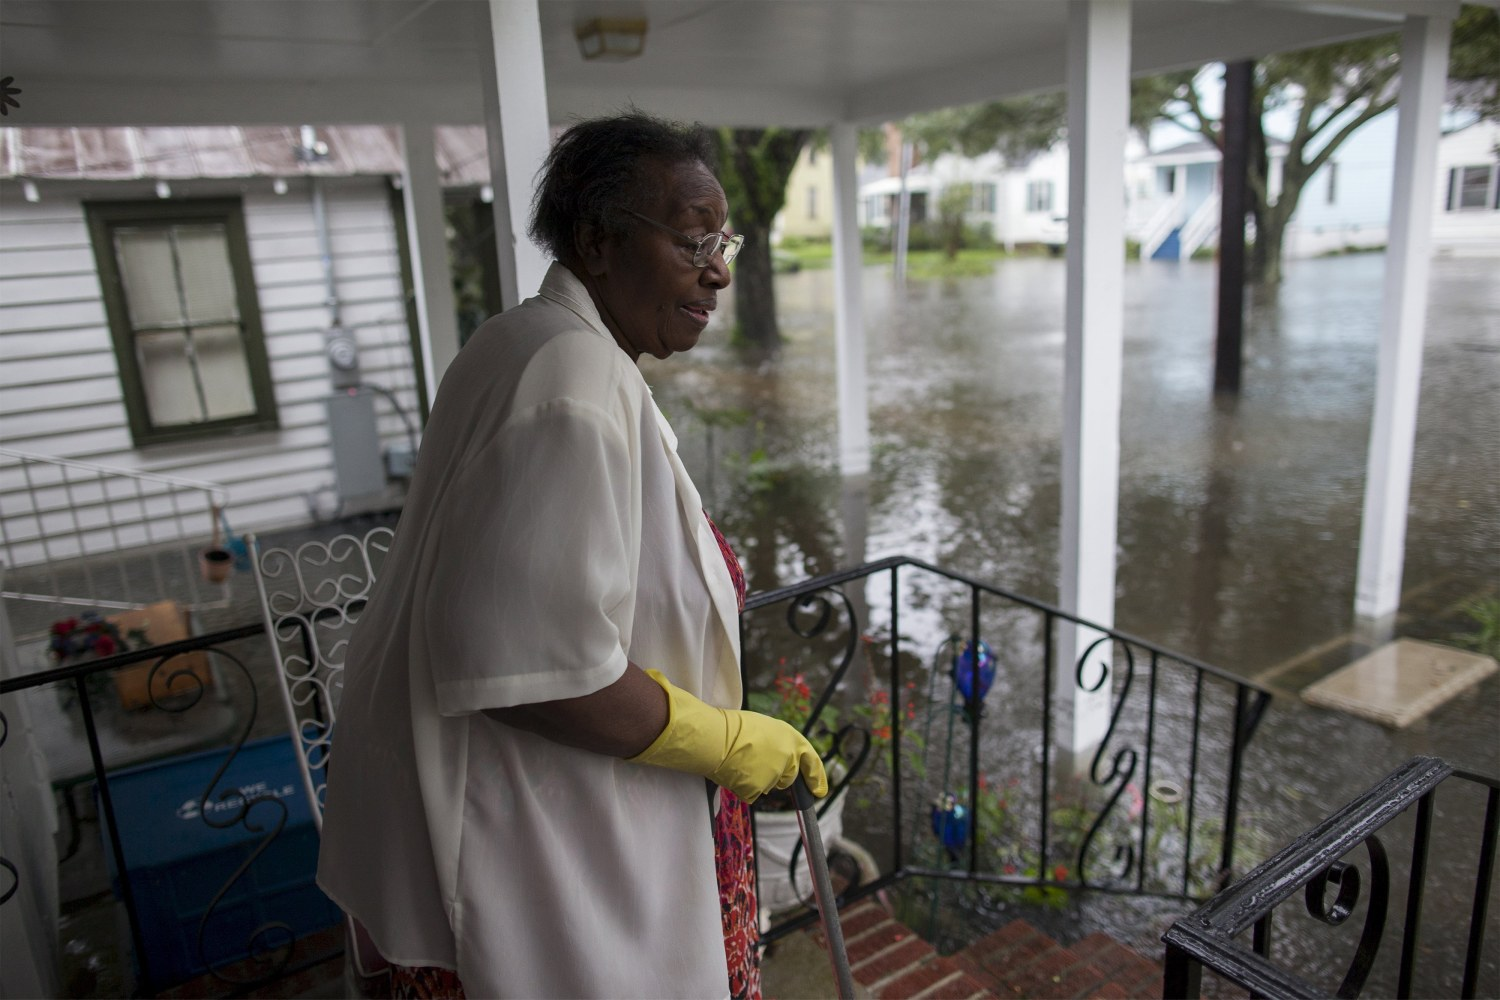 flood insurance 5 things you need to know when the water hits nbc news. Black Bedroom Furniture Sets. Home Design Ideas